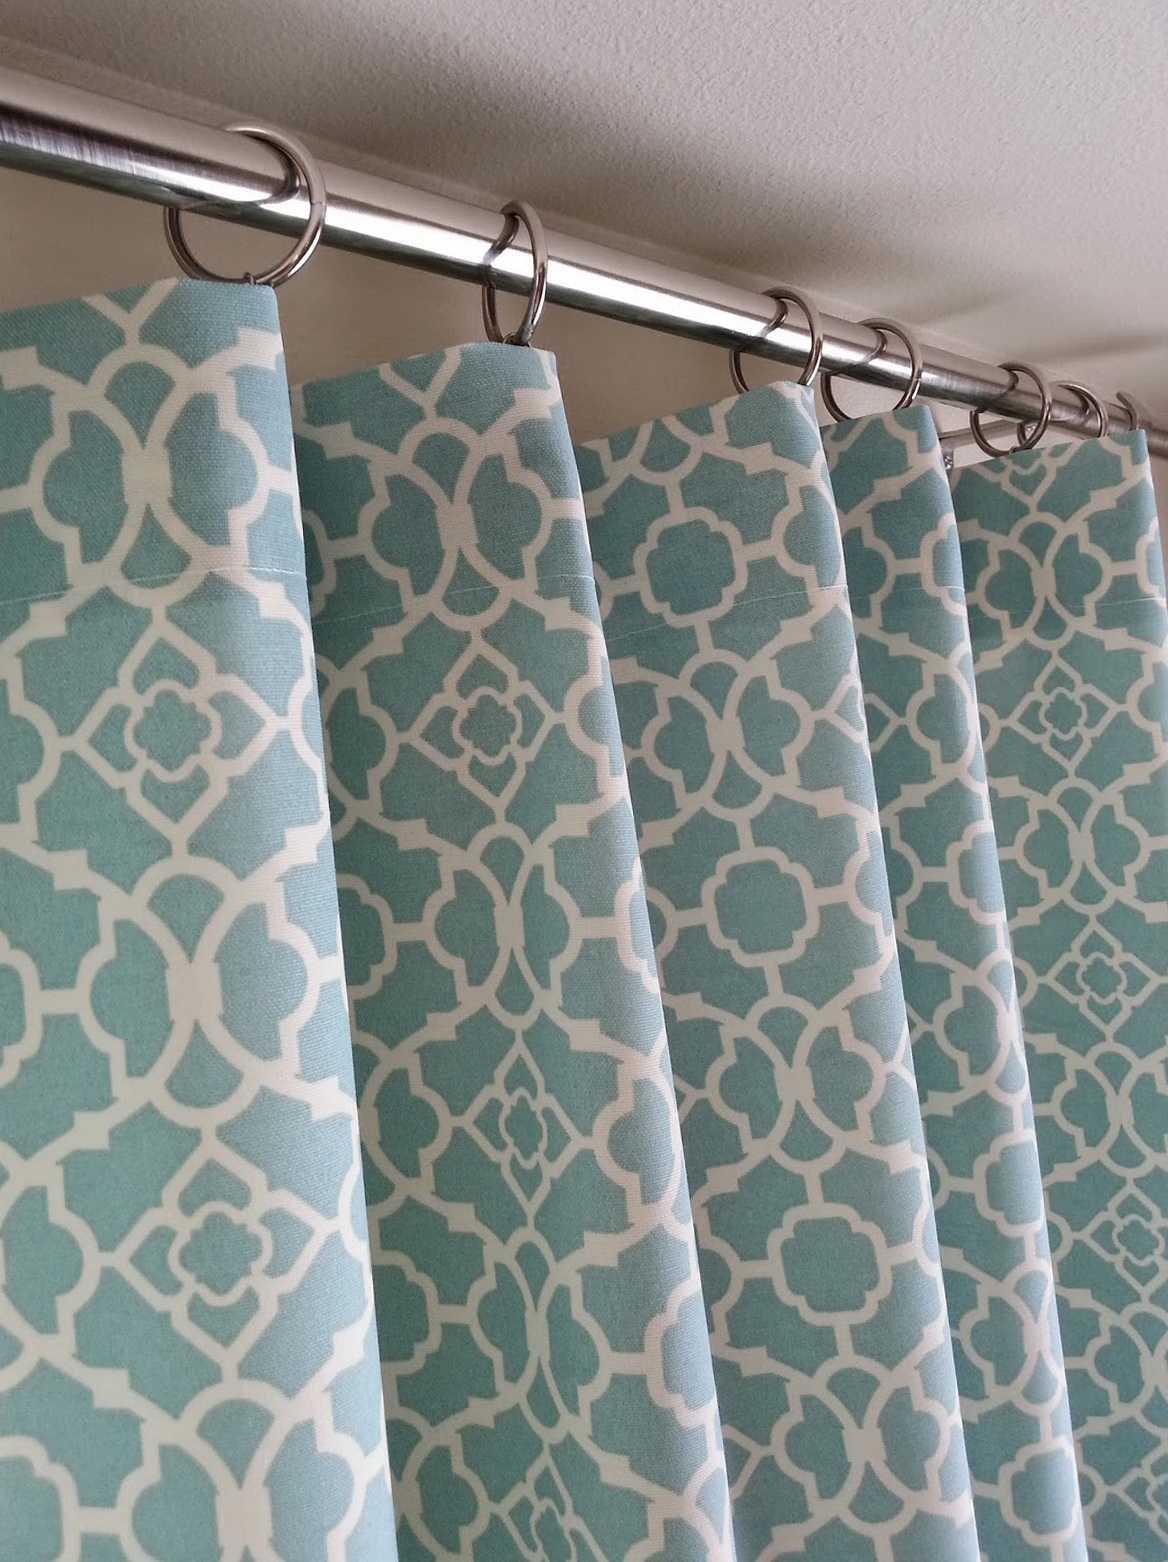 Ring Top Curtains How To Make